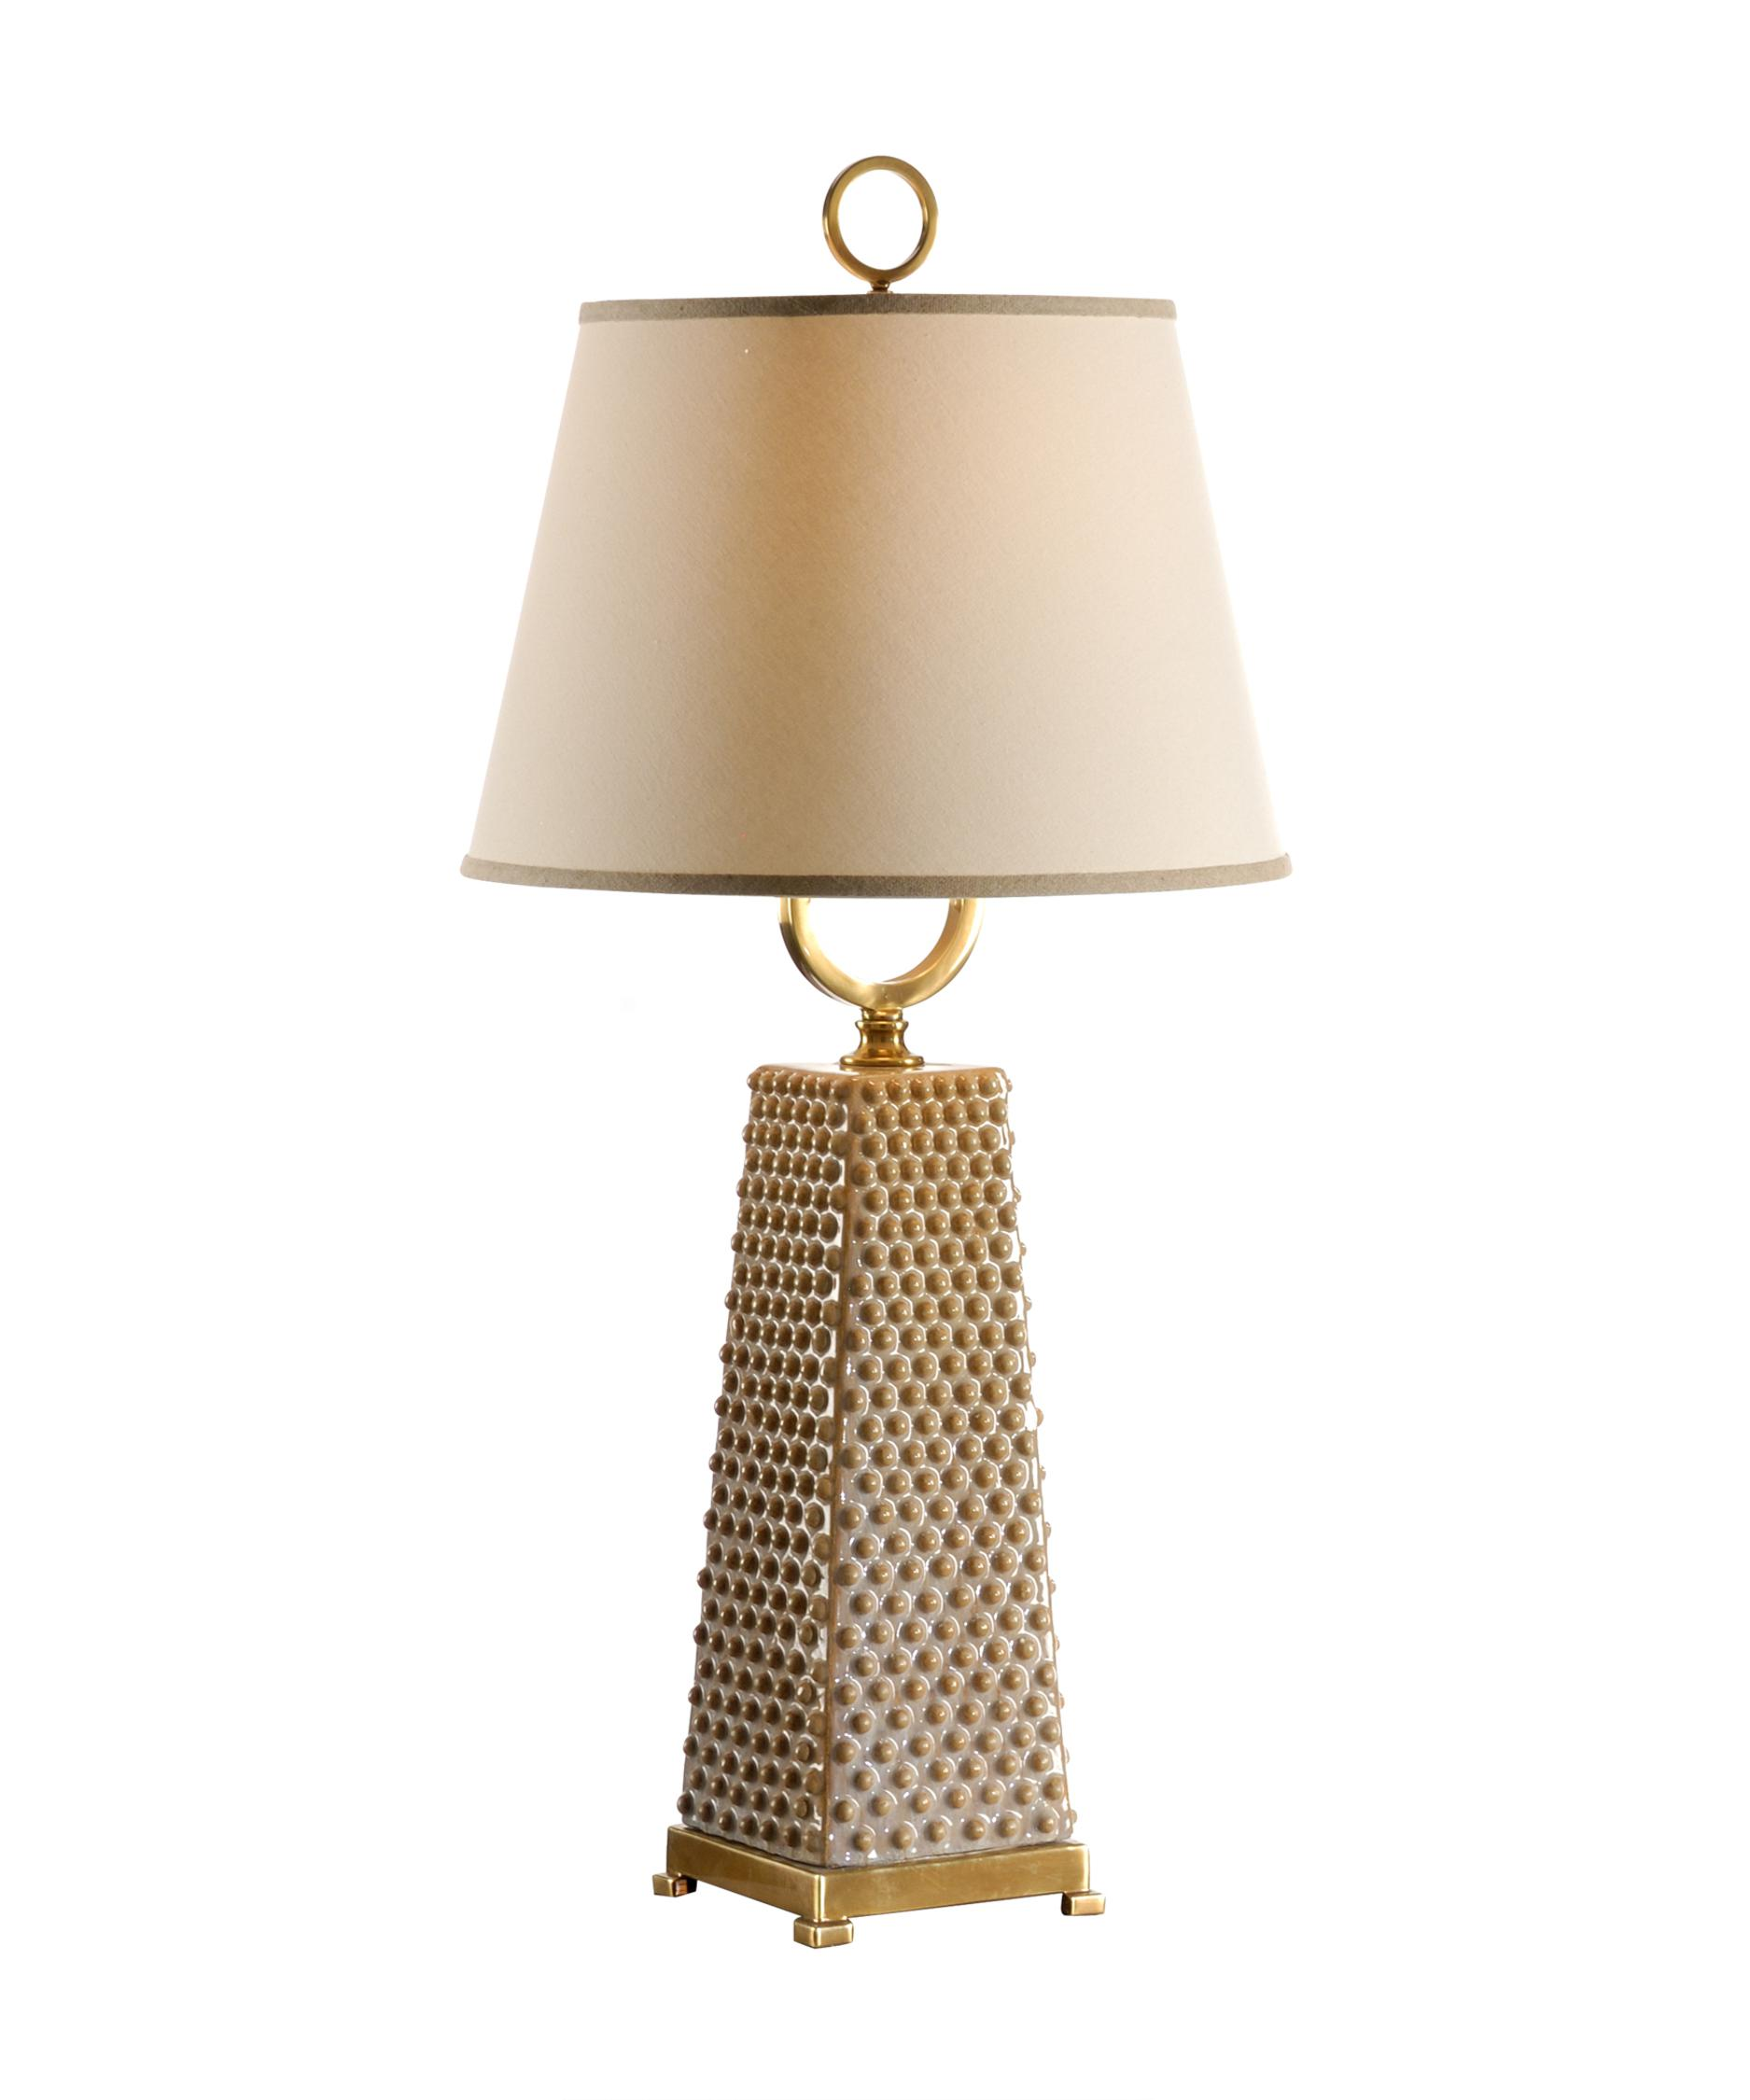 Wildwood Dotted Pyramid With Ring 36 Inch Table Lamp